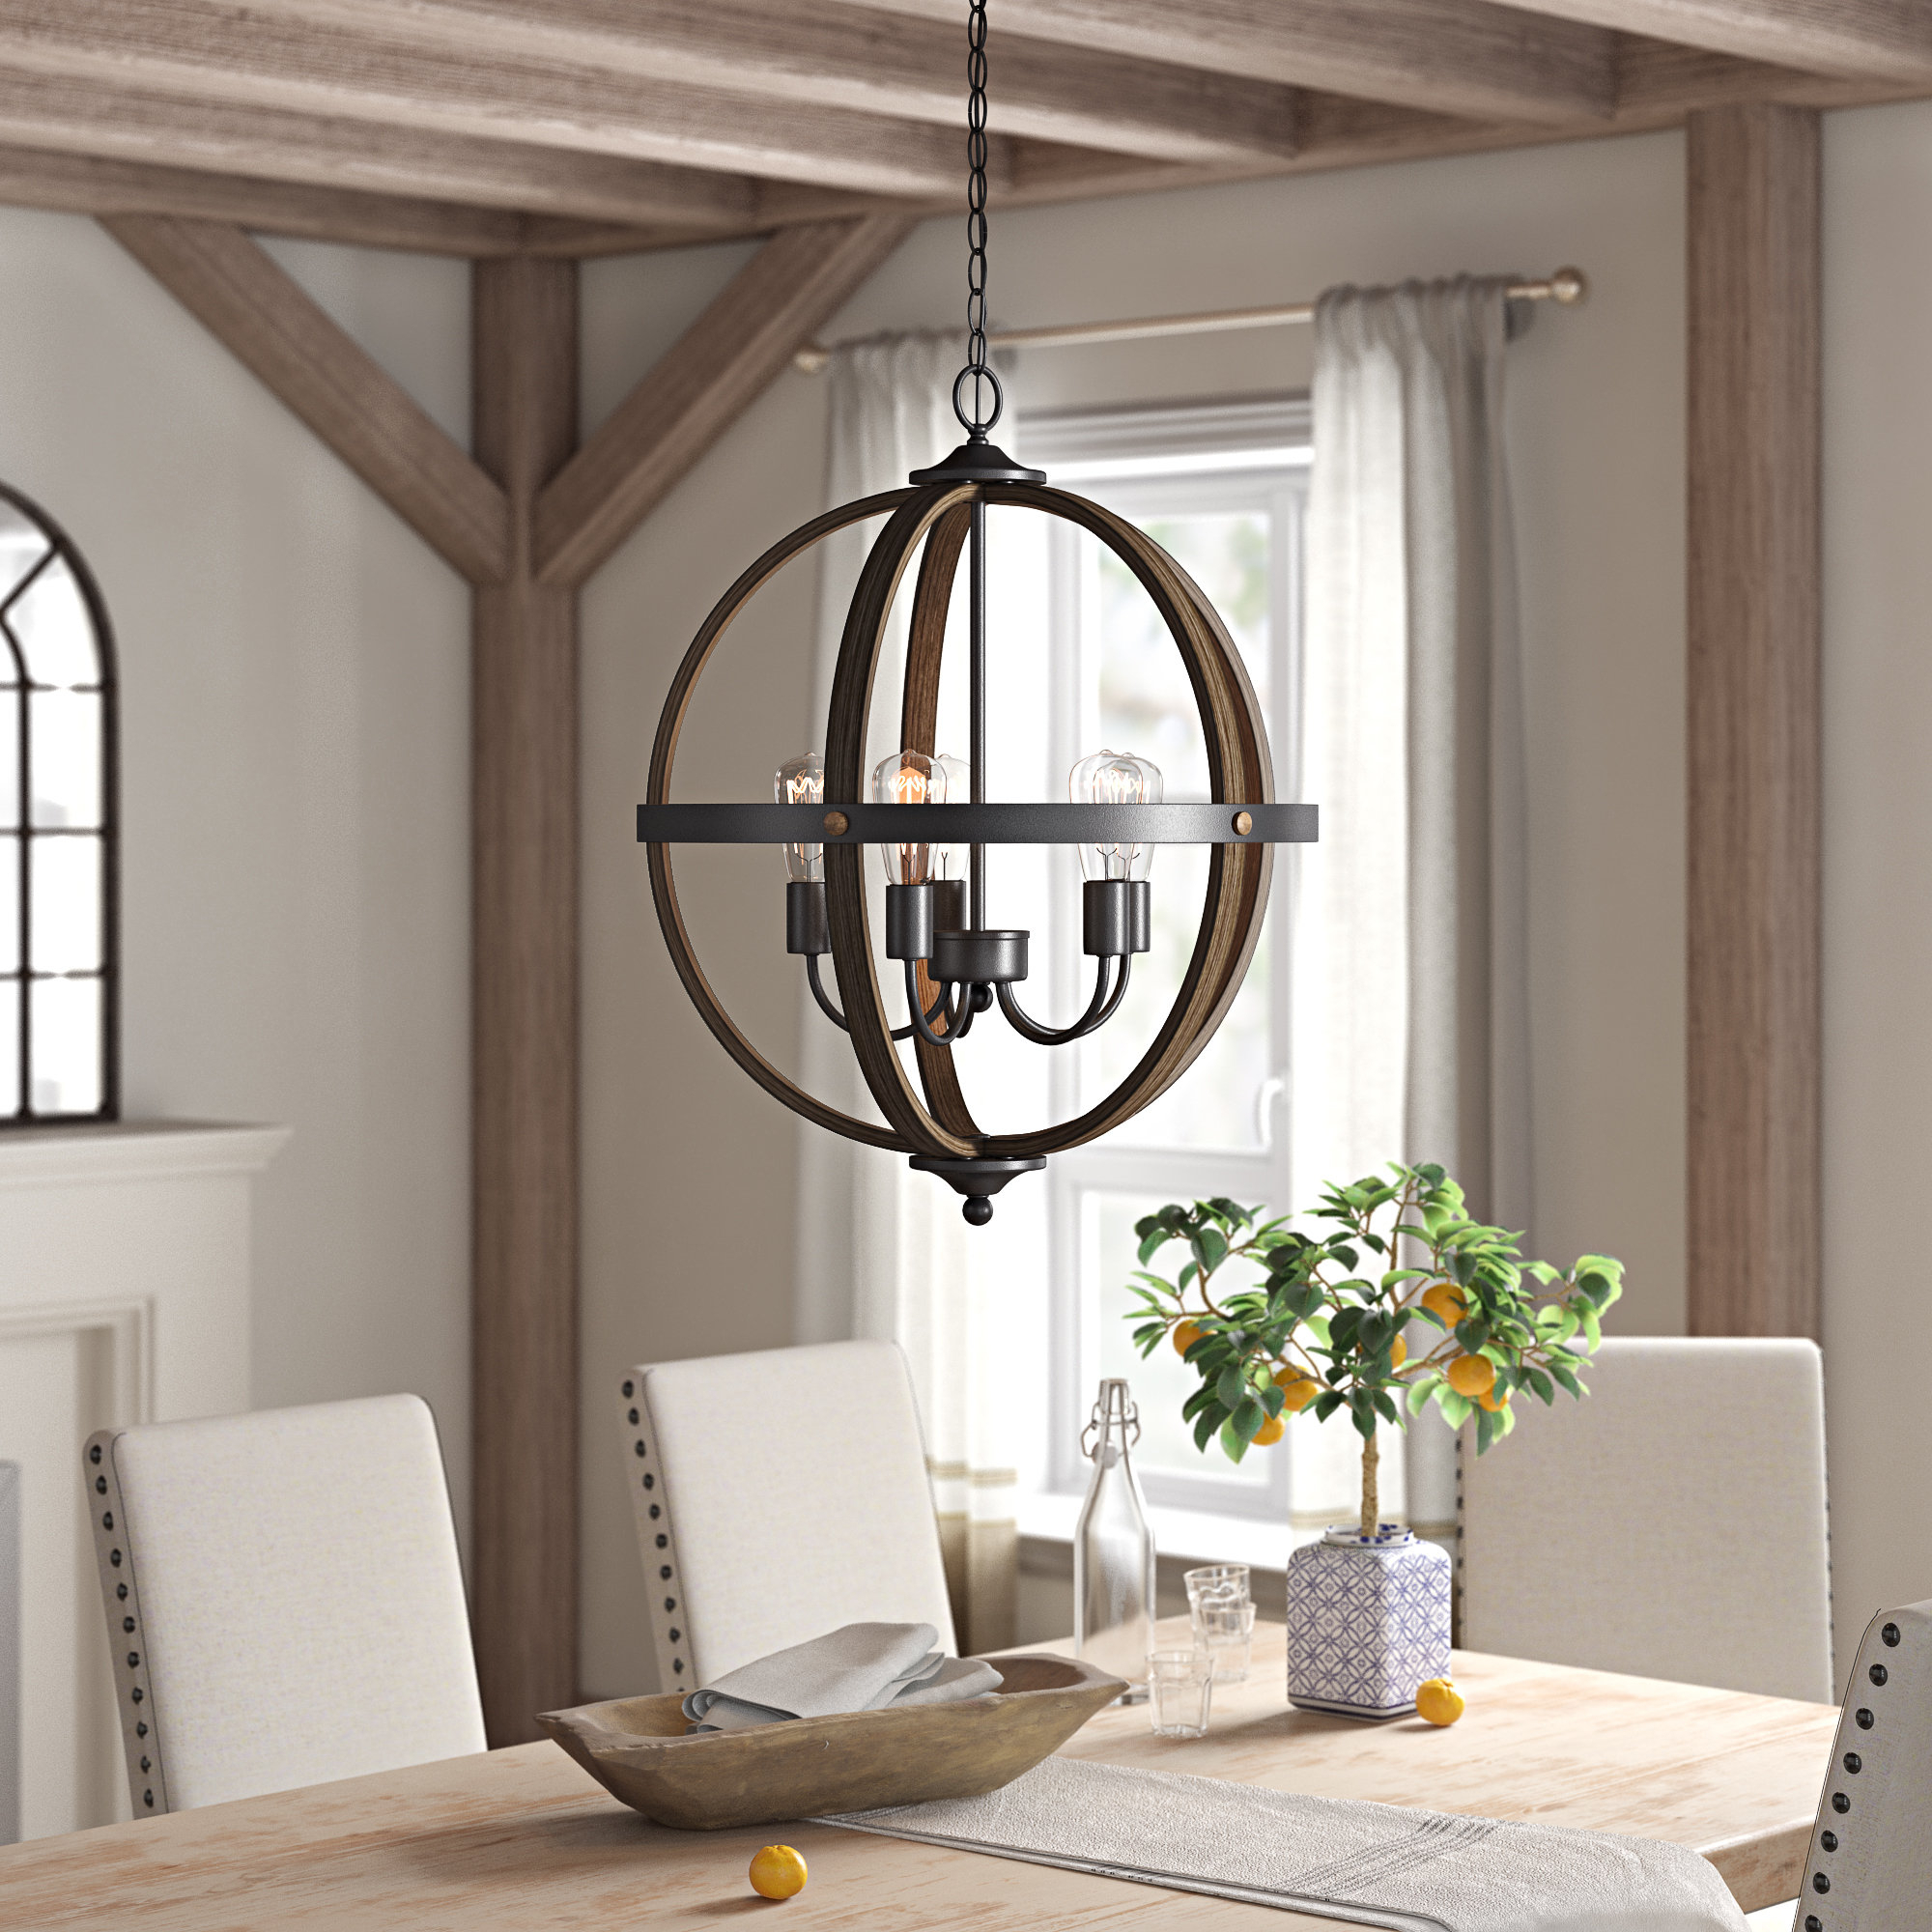 Makeba 5 Light Globe Chandelier Within Best And Newest Filipe Globe Chandeliers (View 18 of 20)